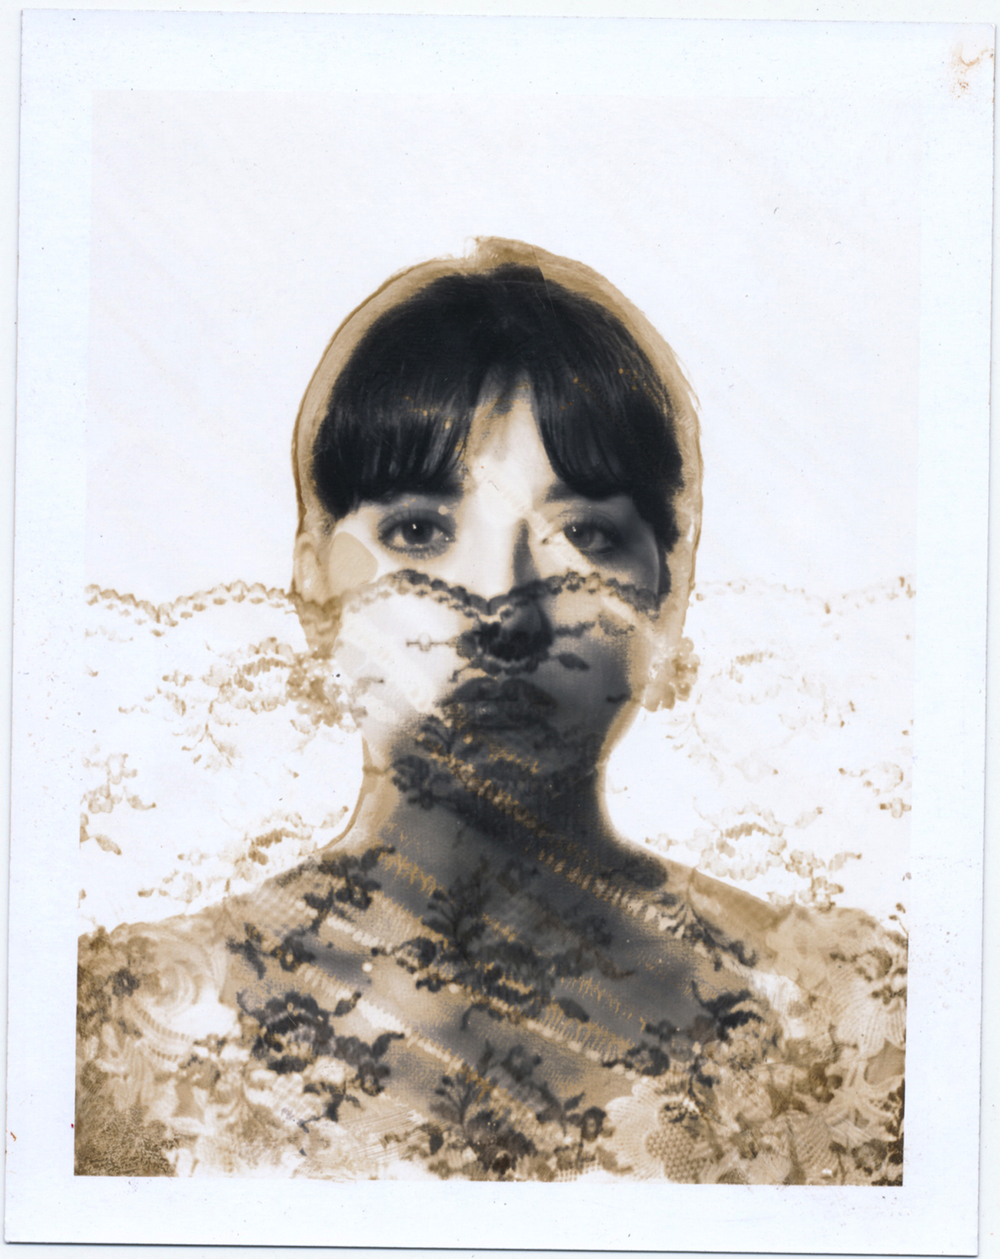 Angelica Hiding Behind Lace   4x5 Polaroid test print.  © Jud Burgess  1989